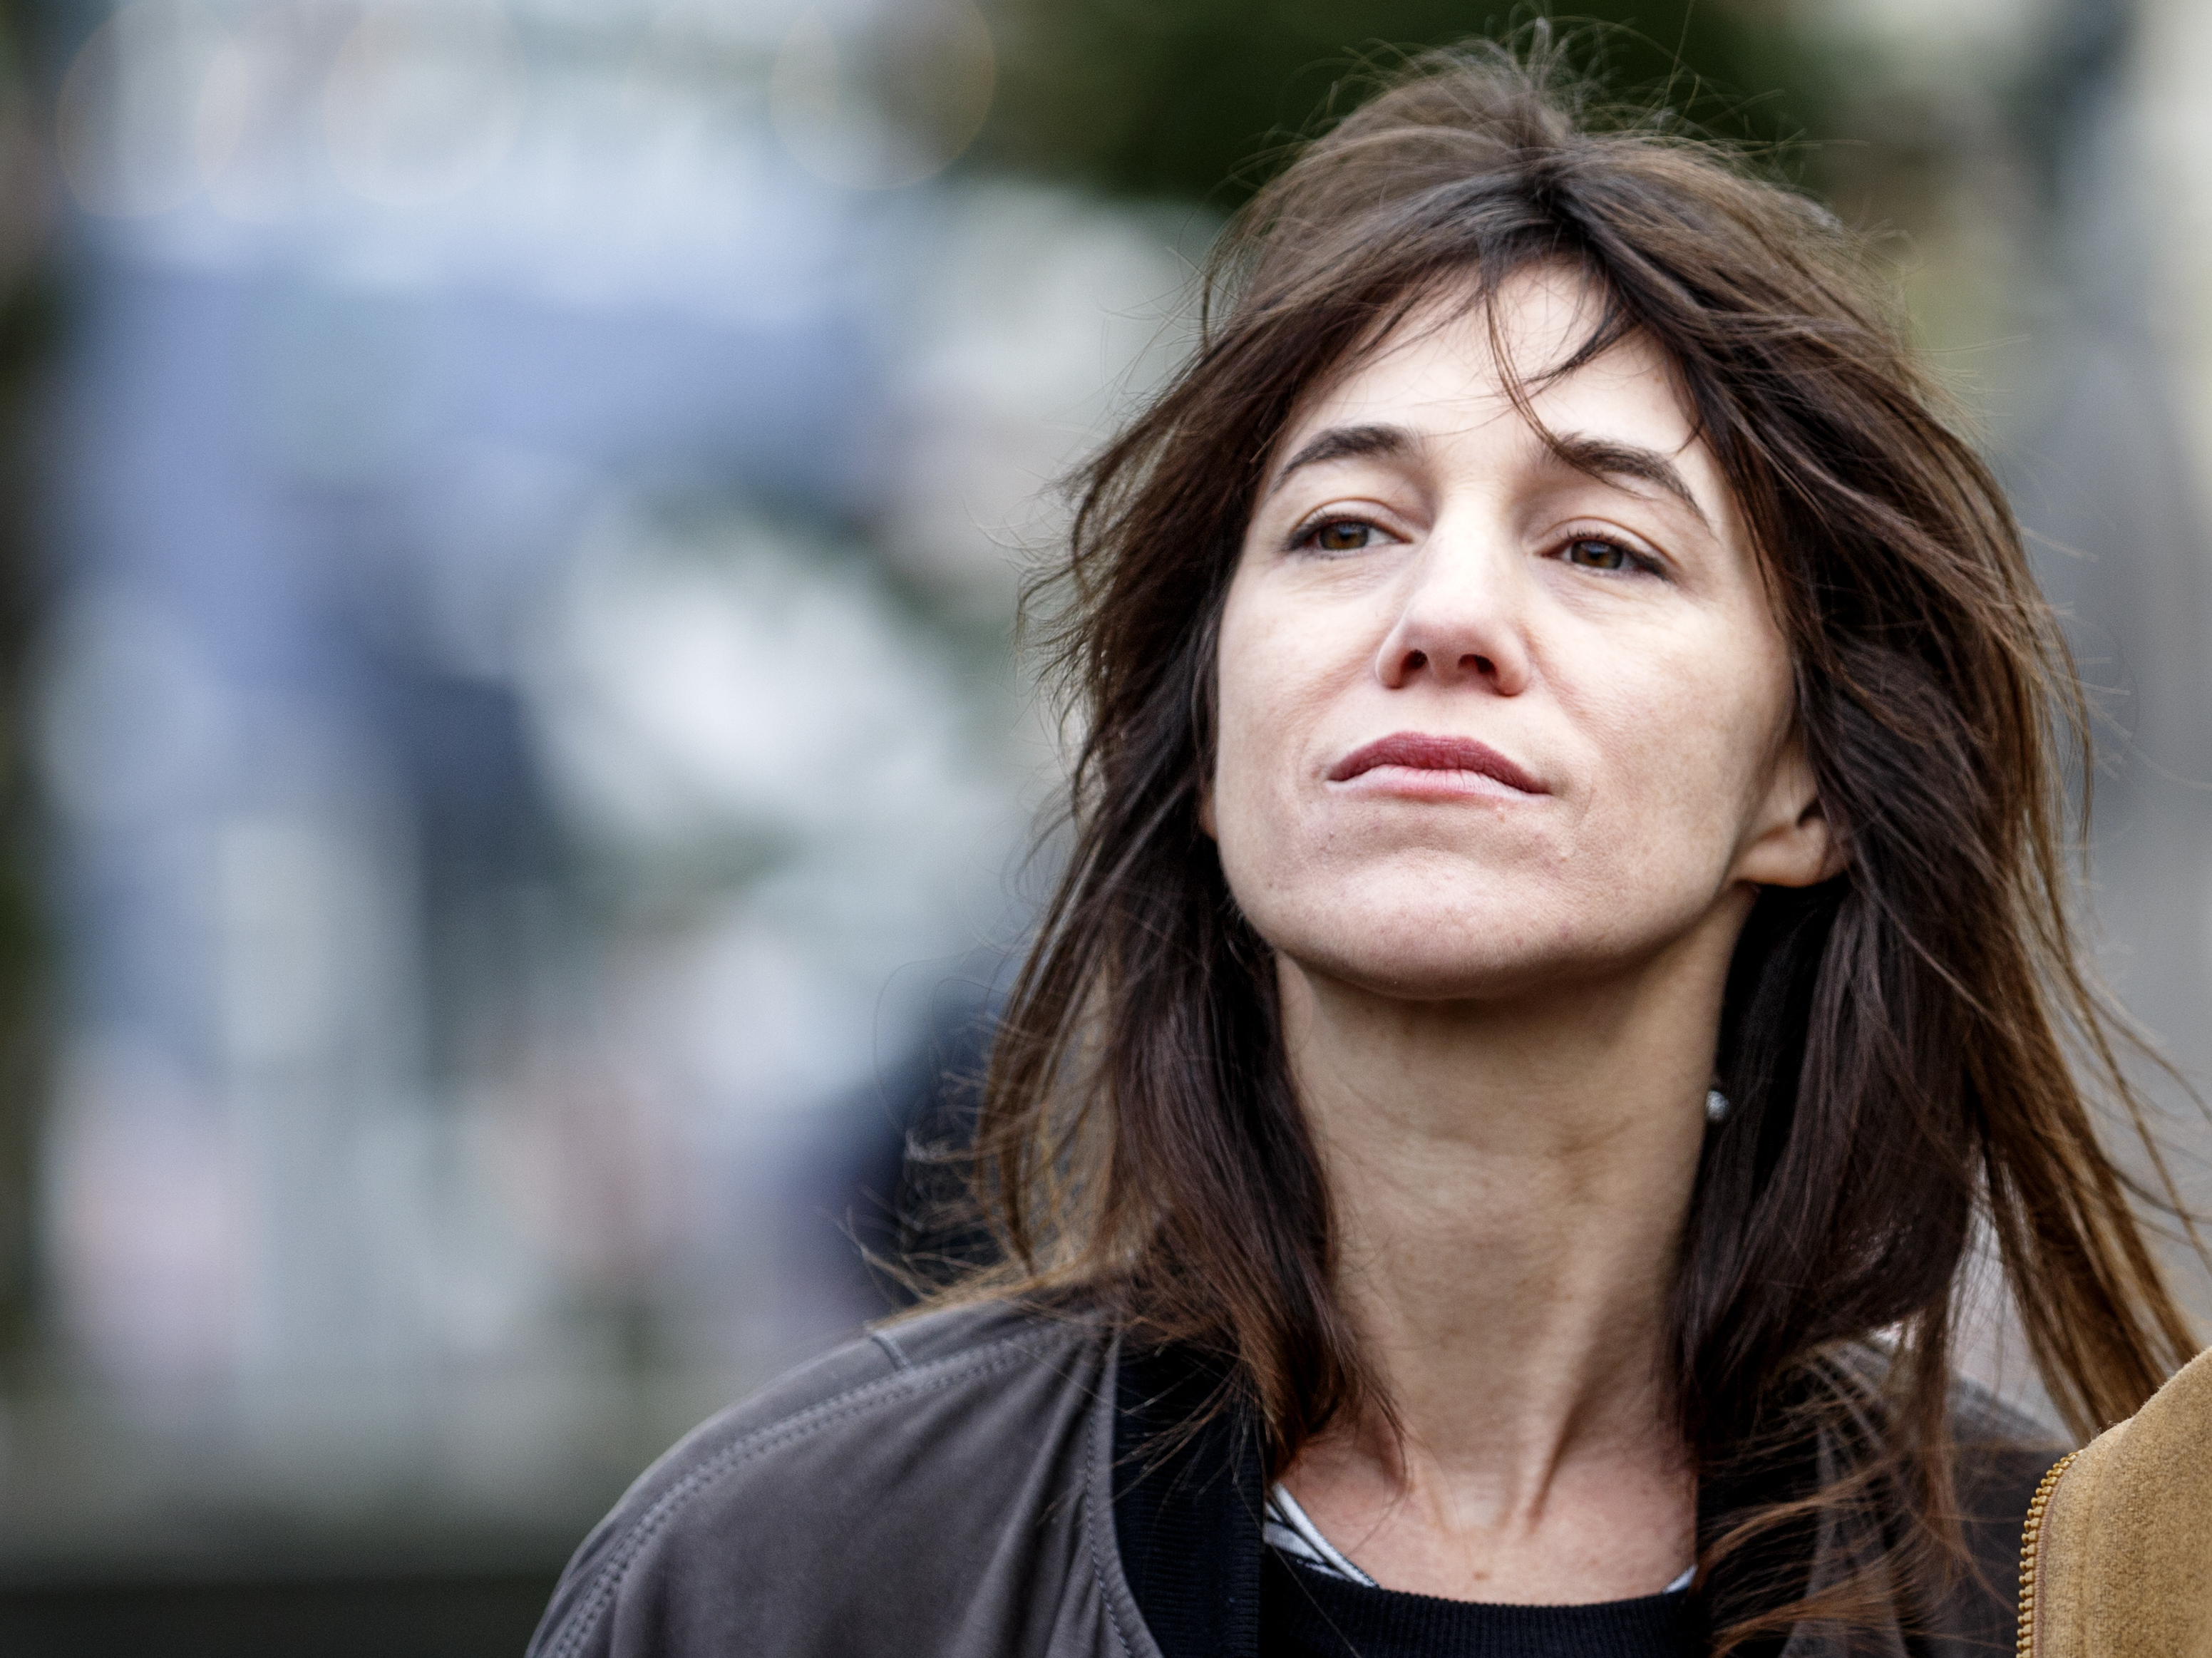 Charlotte Gainsbourg Images